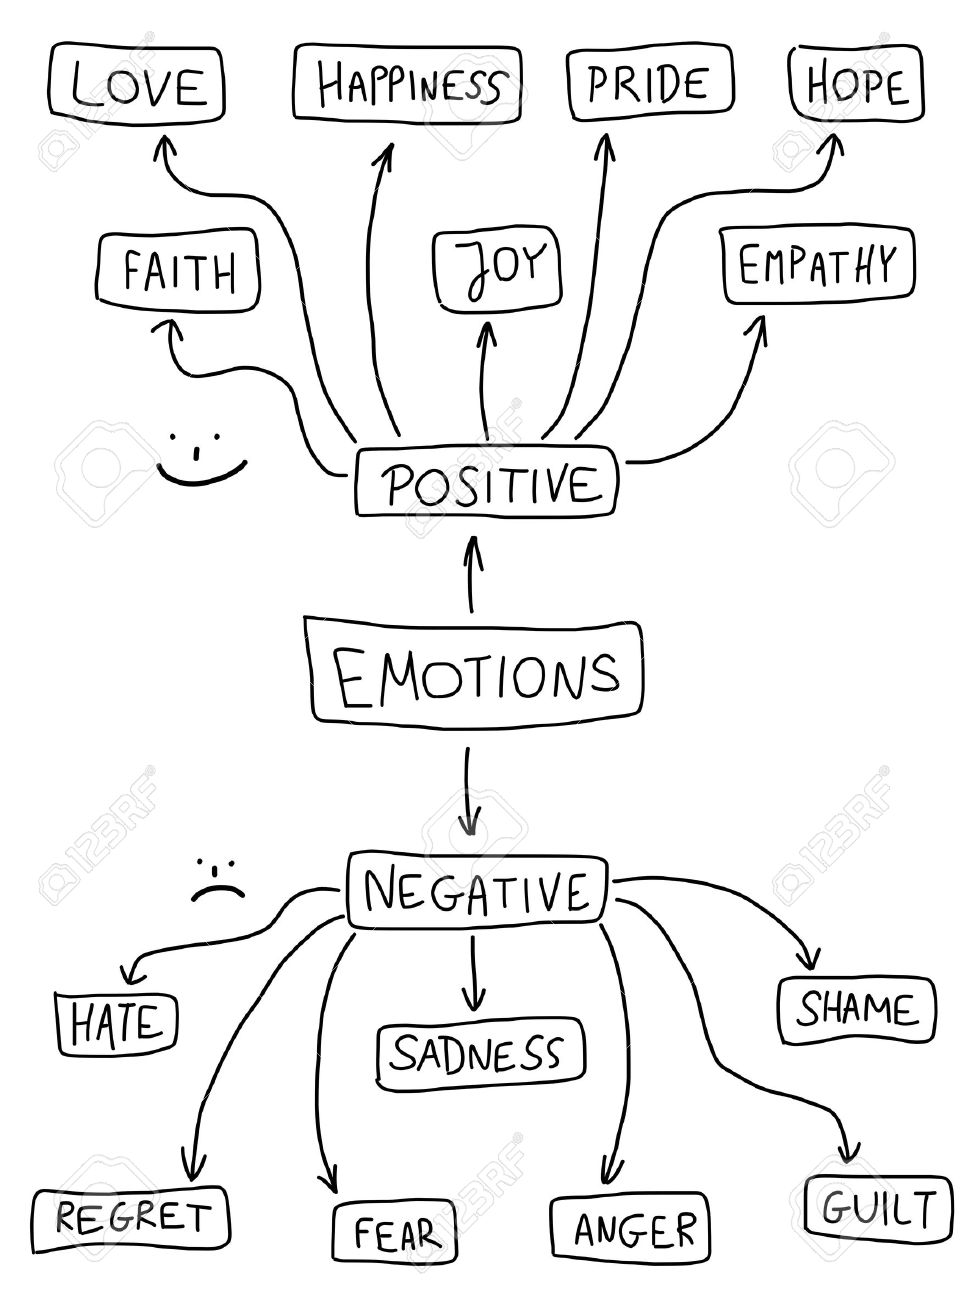 Human emotion mind map - emotional doodle graph with various positive and negative emotions. Stock Vector - 15398489